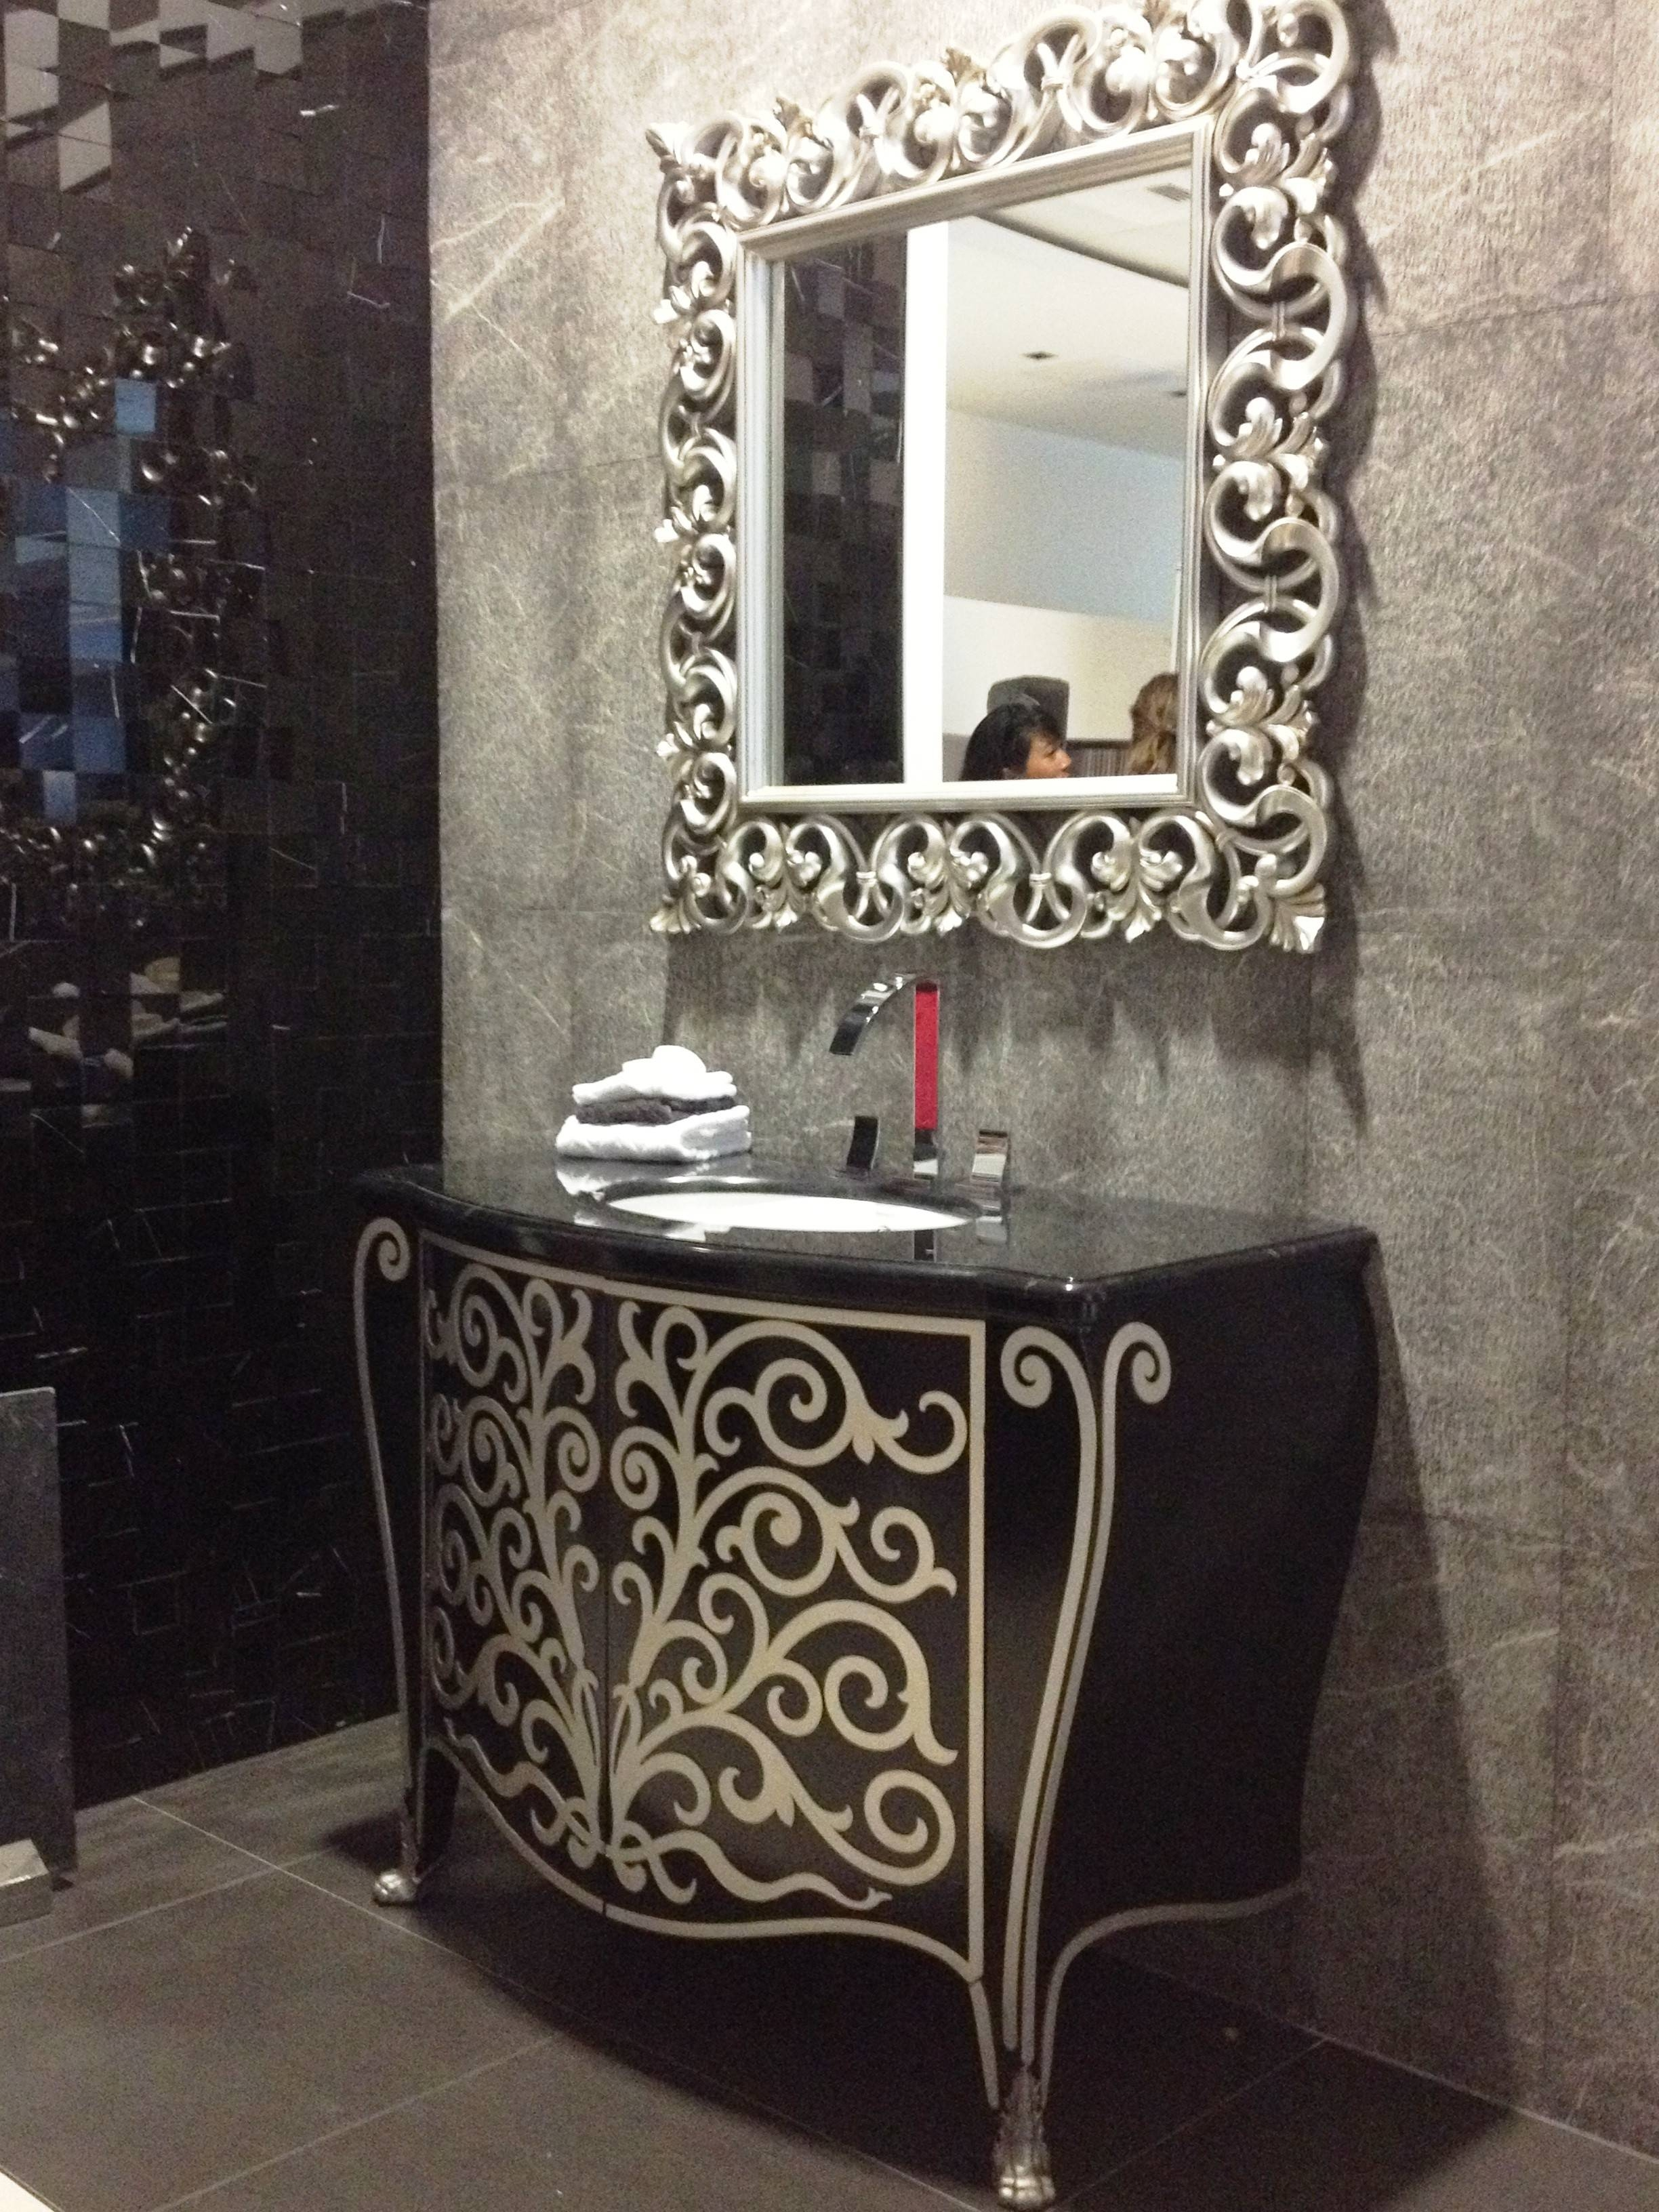 Bathroom Cabinets : Silver Framed Wall Mirror Bathroom Vanity within Large Artistic Mirrors (Image 1 of 15)